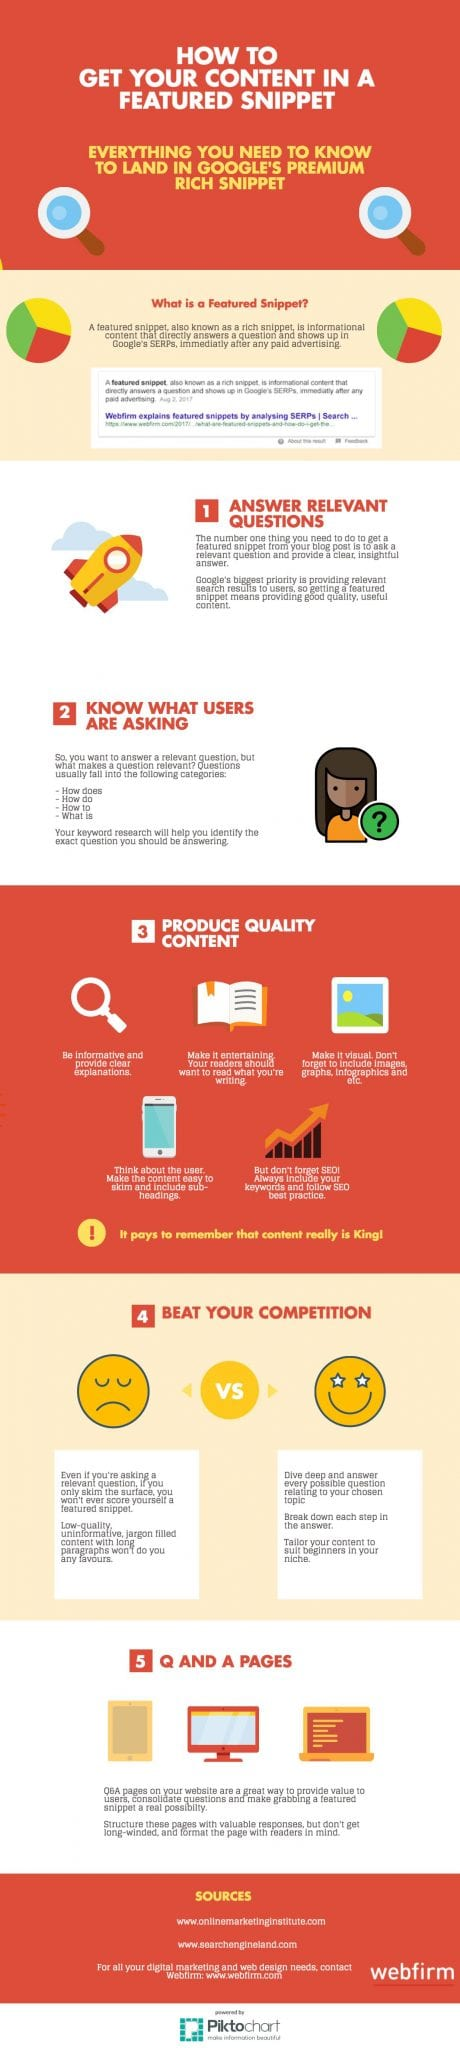 infographic: how to get a featured snippet